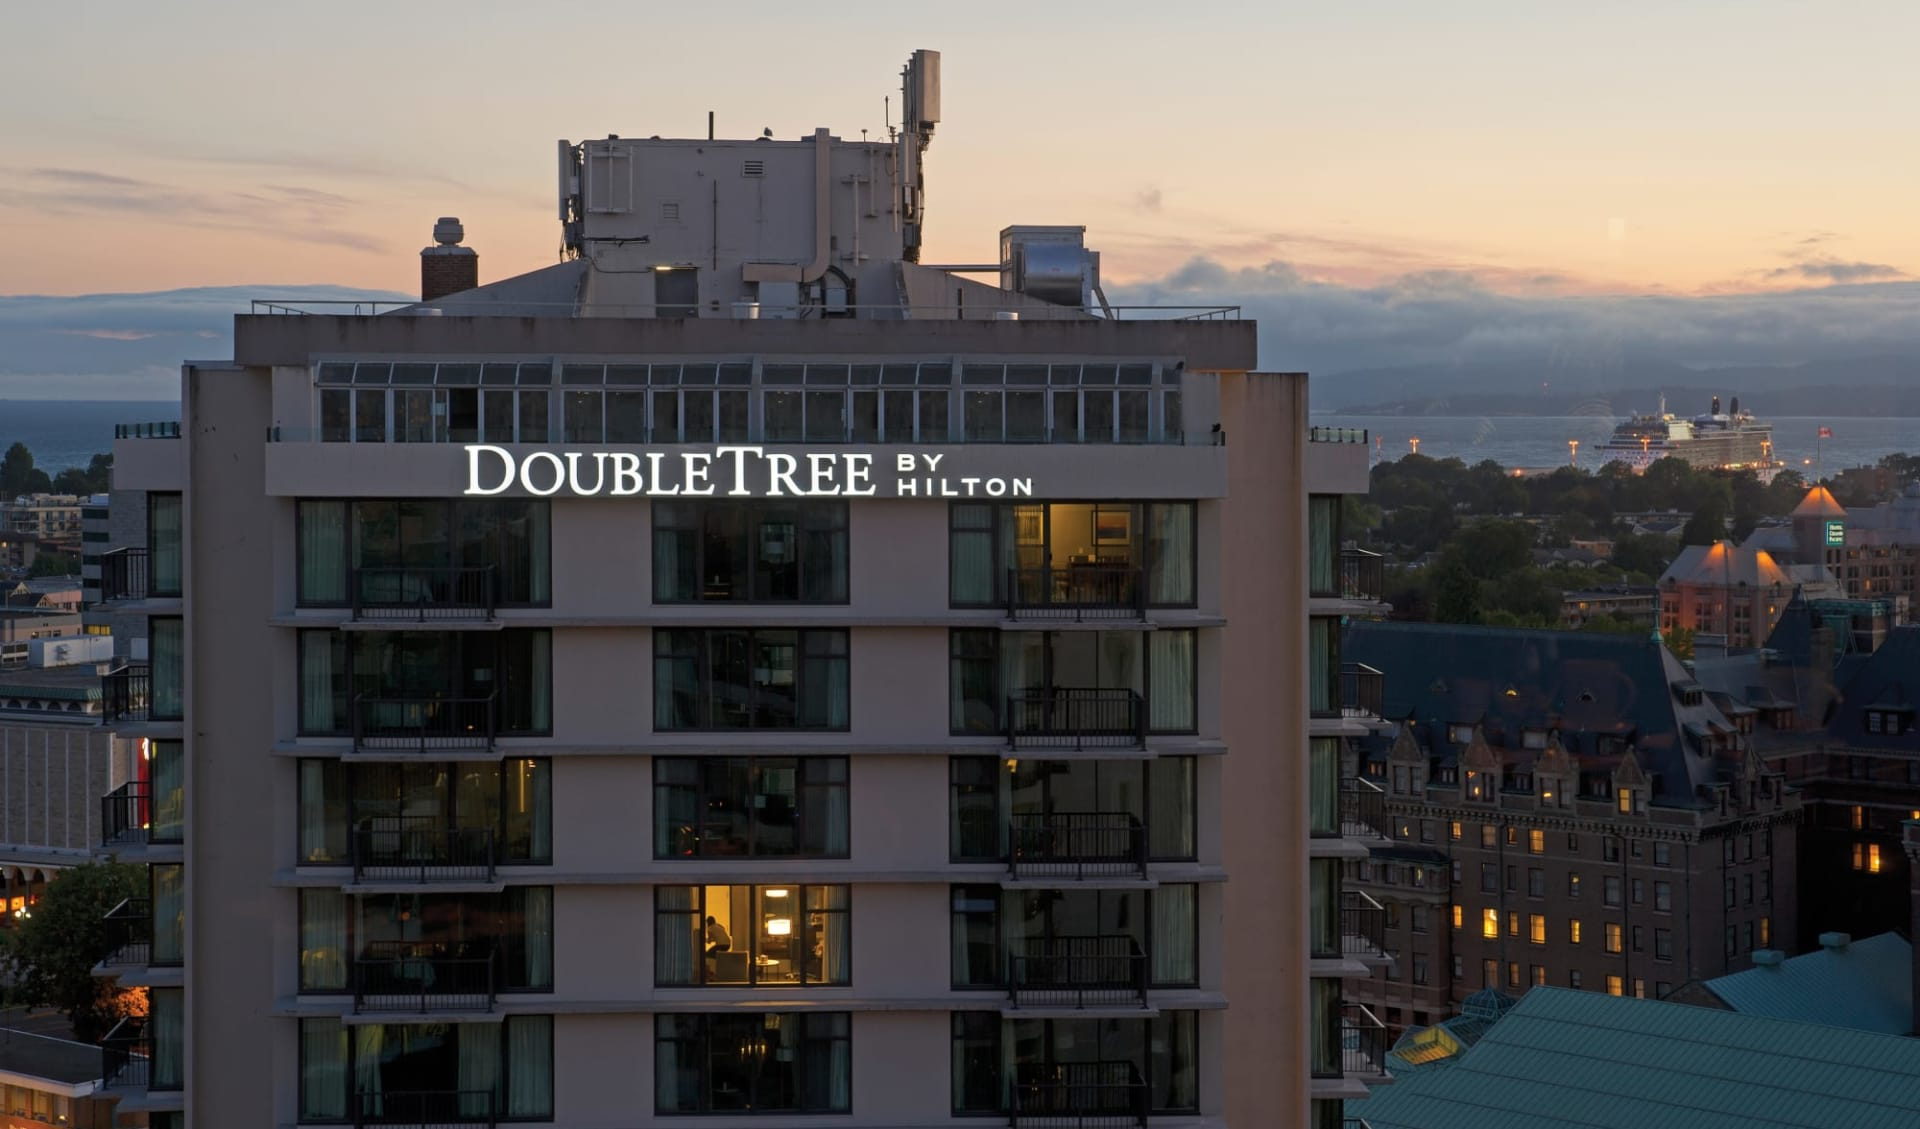 Doubletree by Hilton in Victoria: exterior_Doubletree by Hilton_FrontView